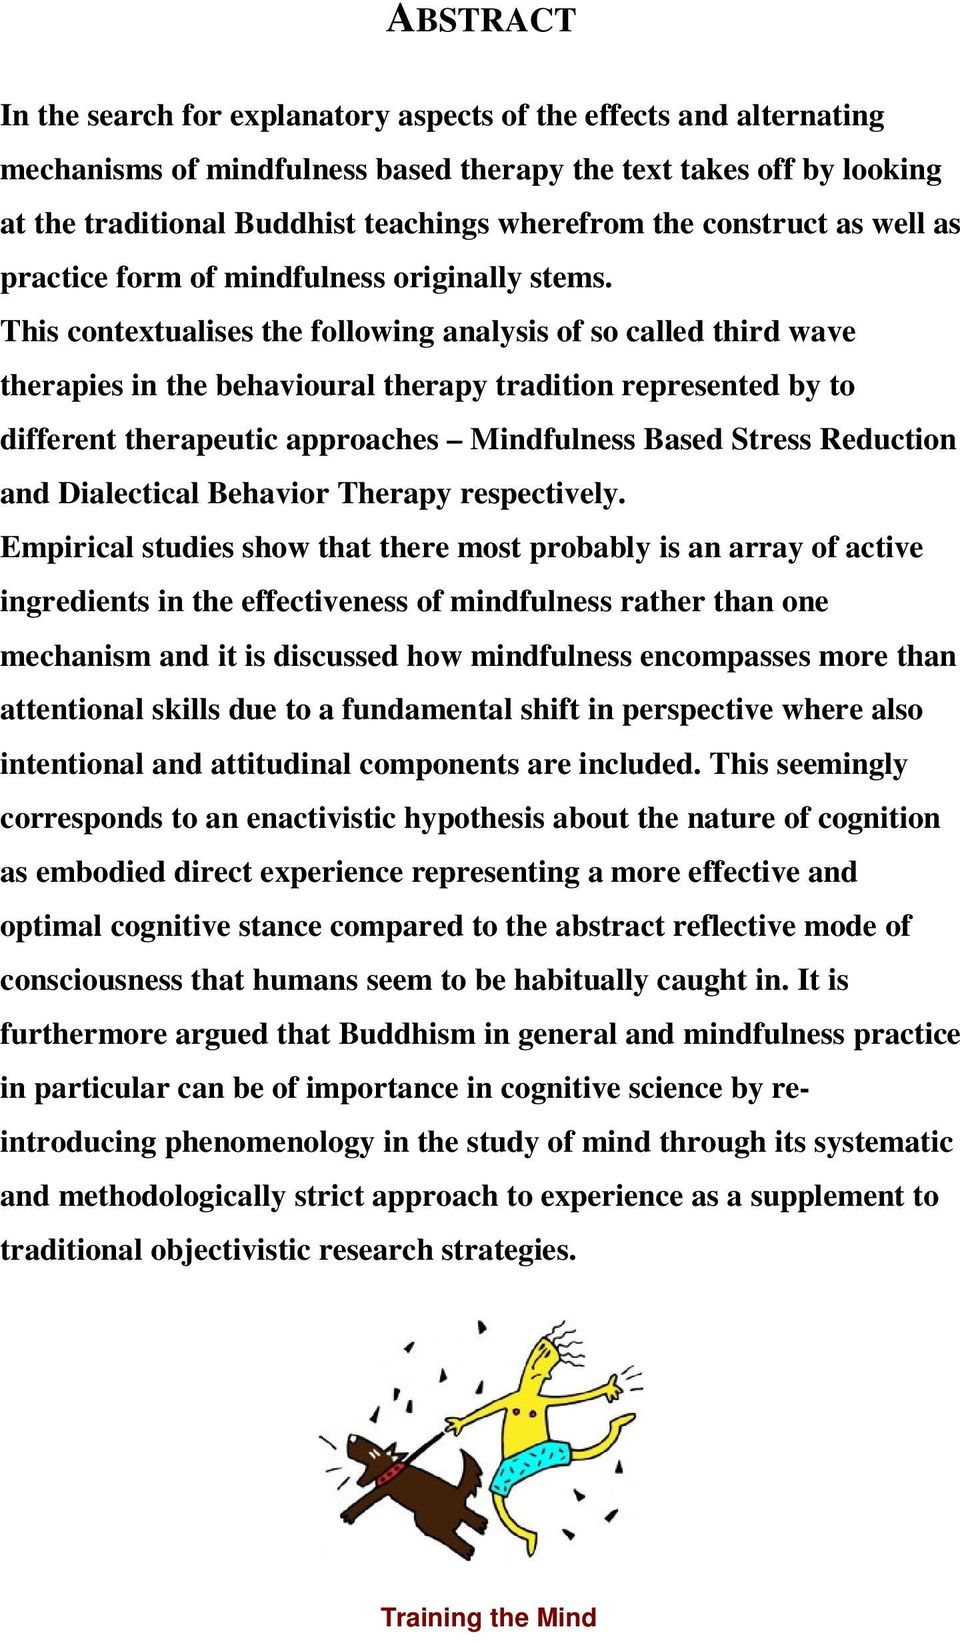 This contextualises the following analysis of so called third wave therapies in the behavioural therapy tradition represented by to different therapeutic approaches Mindfulness Based Stress Reduction